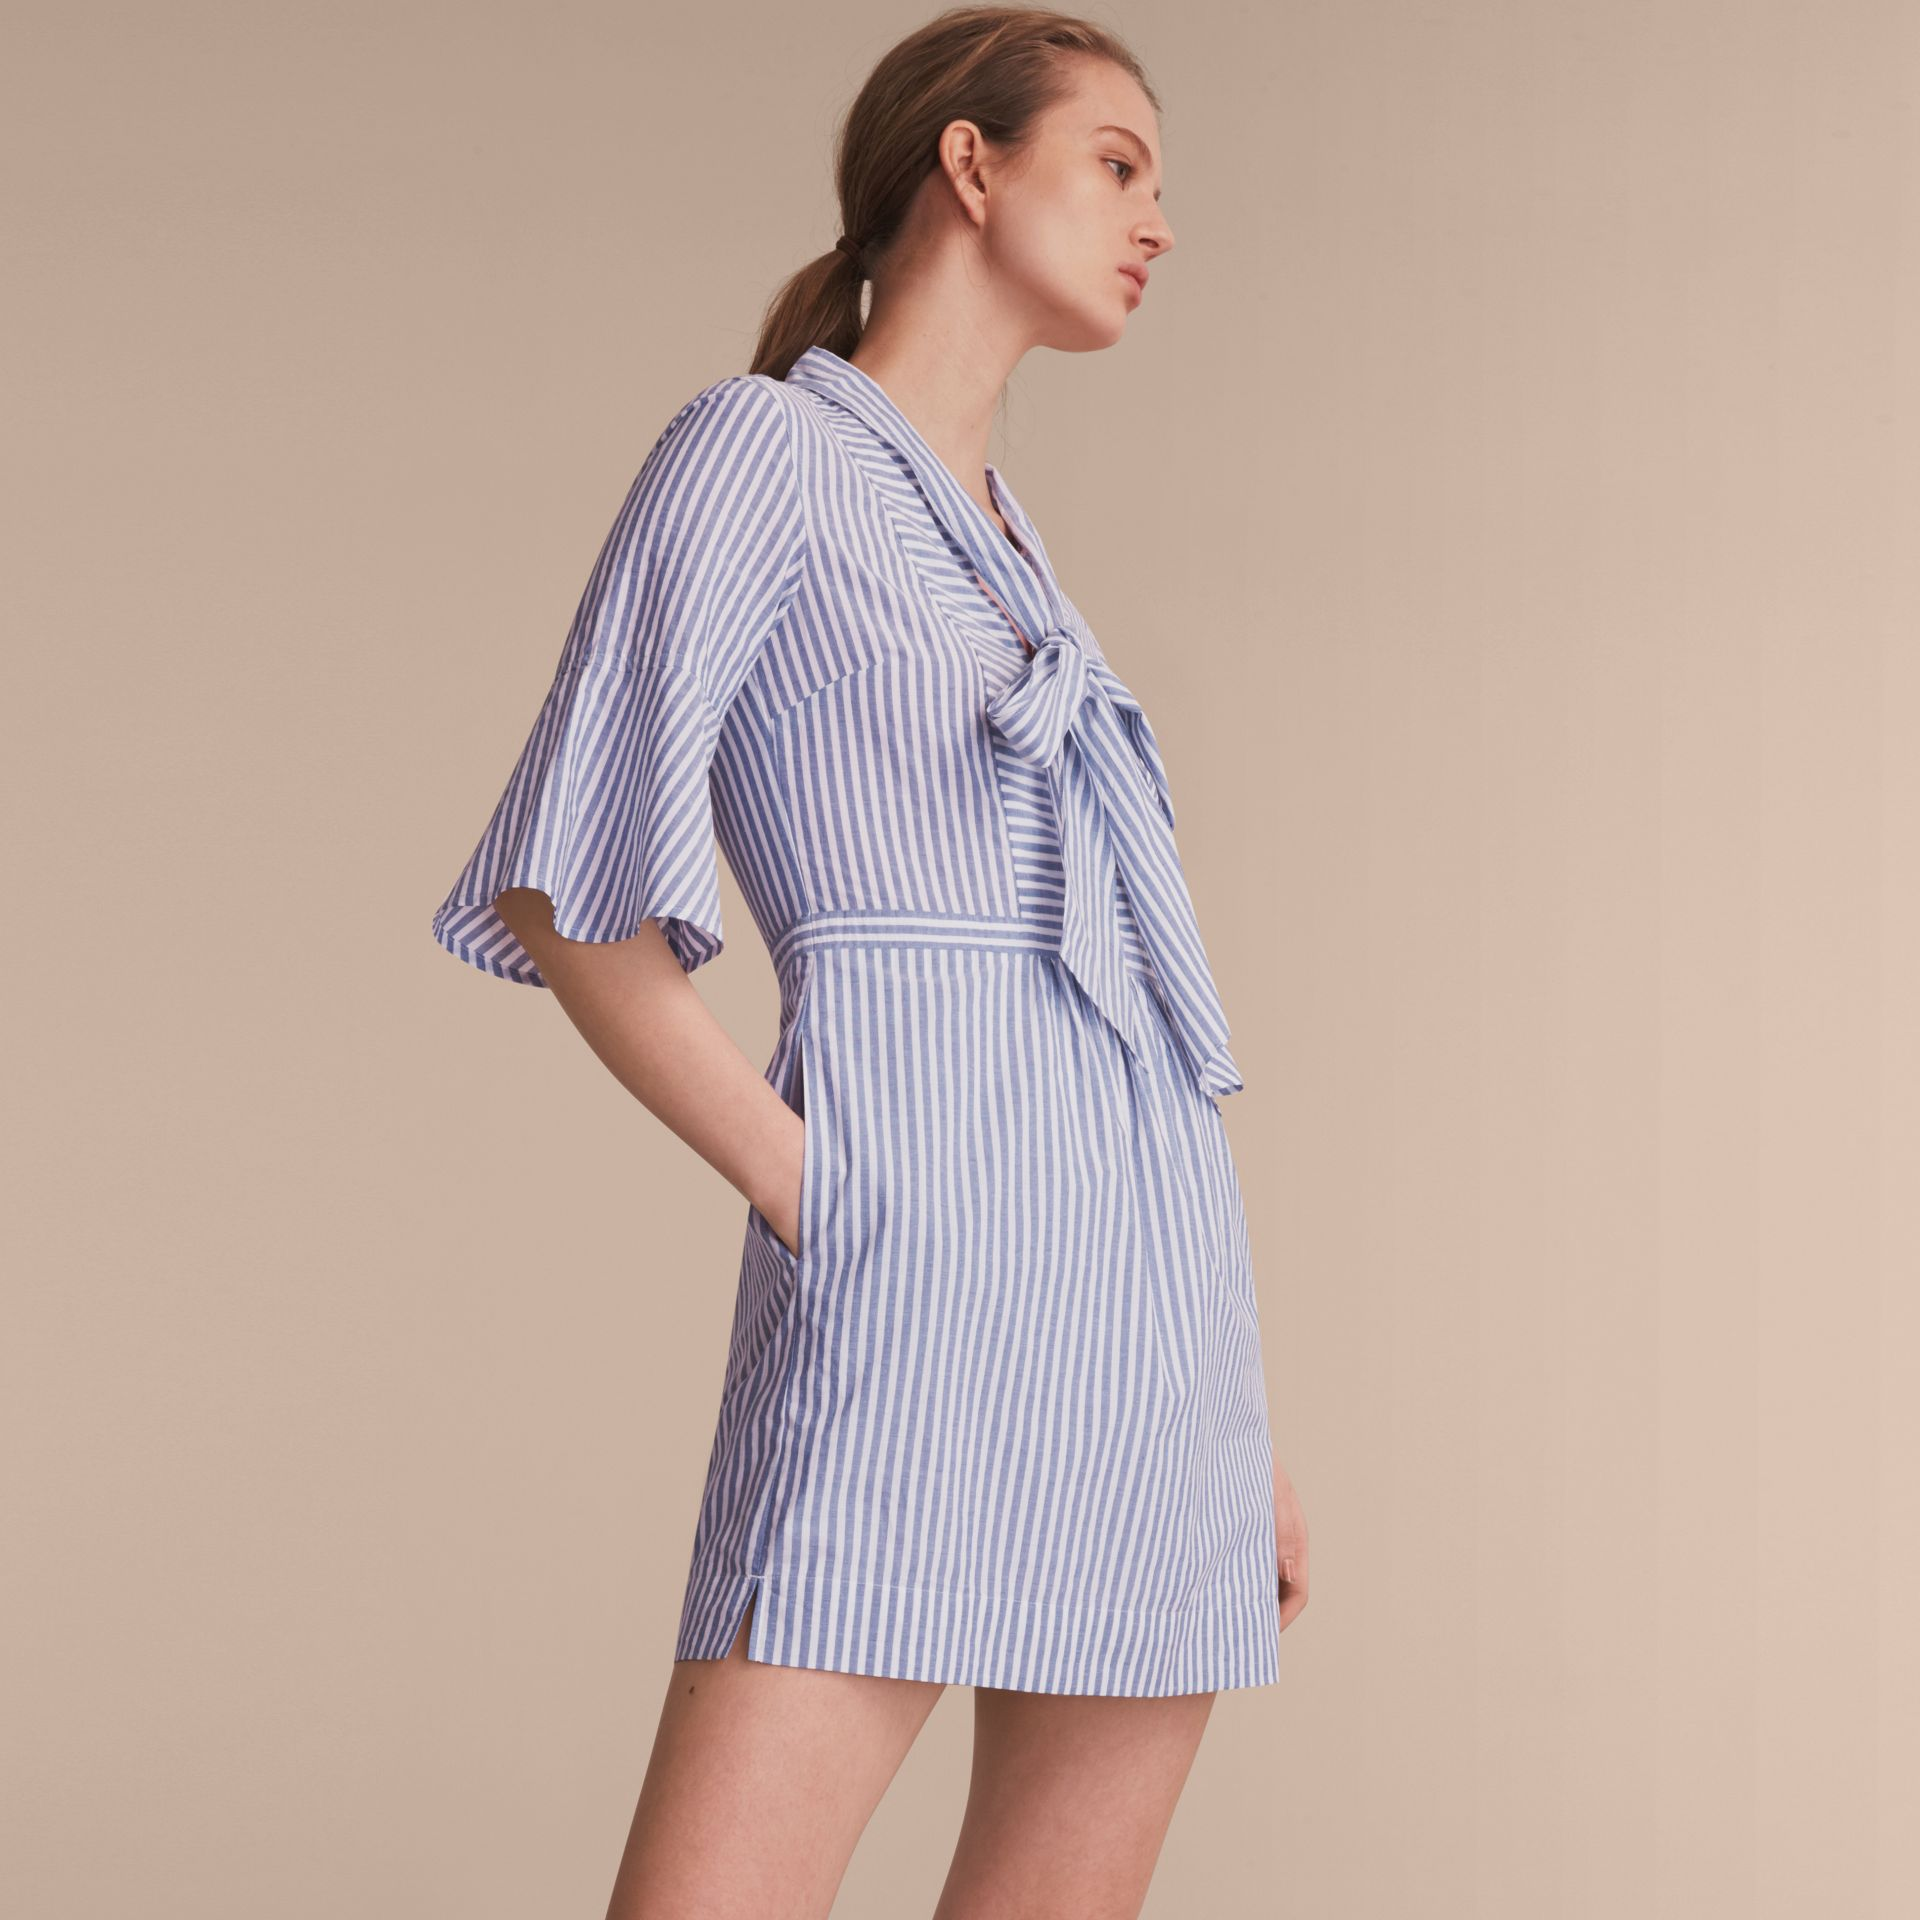 Bell-sleeve Striped Shirt Dress with Tie Neck in Pale Blue/white - Women | Burberry - gallery image 6